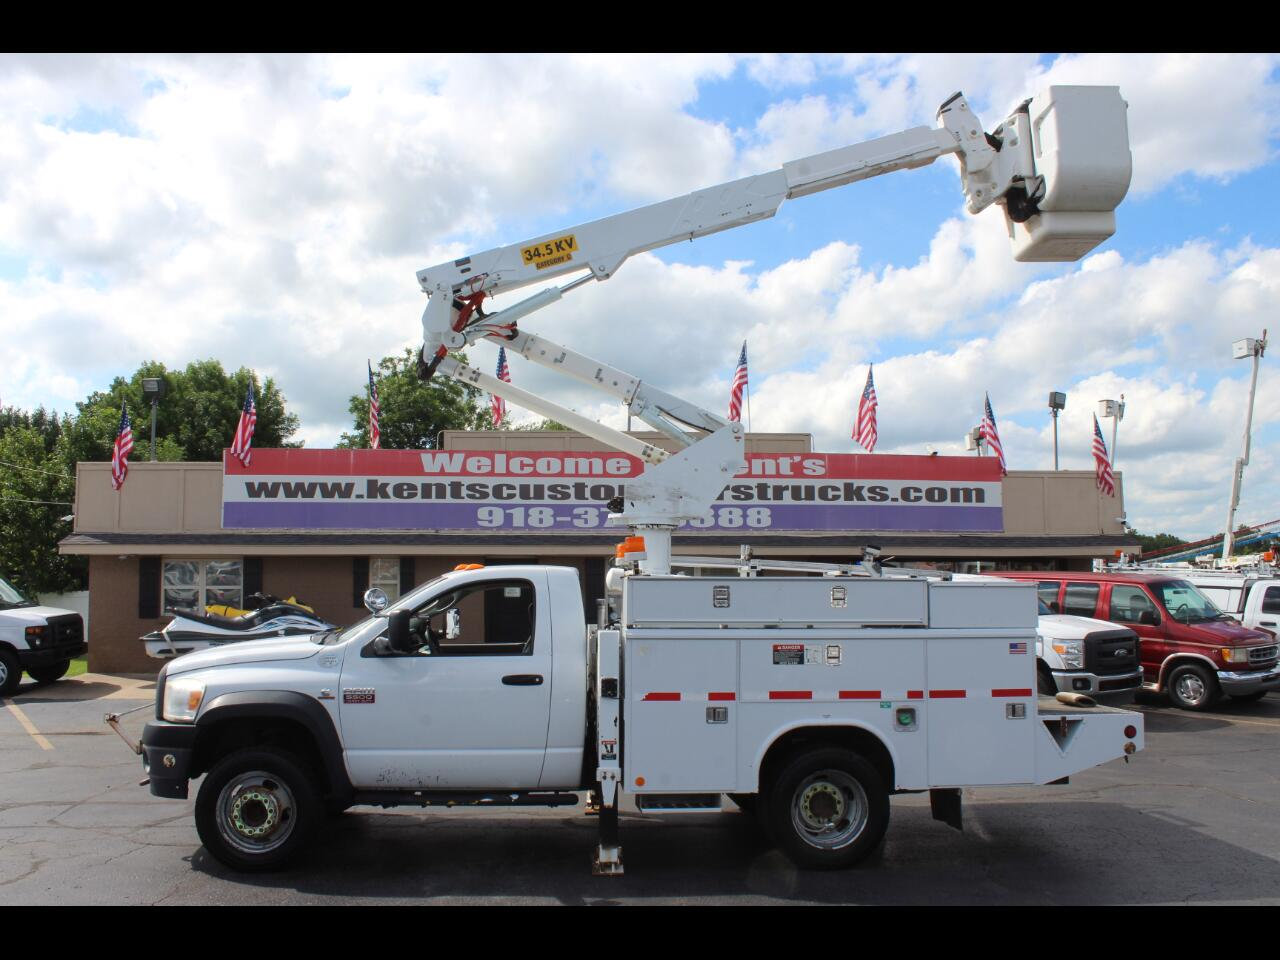 2008 Dodge Ram 5500 Regular Cab 4WD Bucket Truck